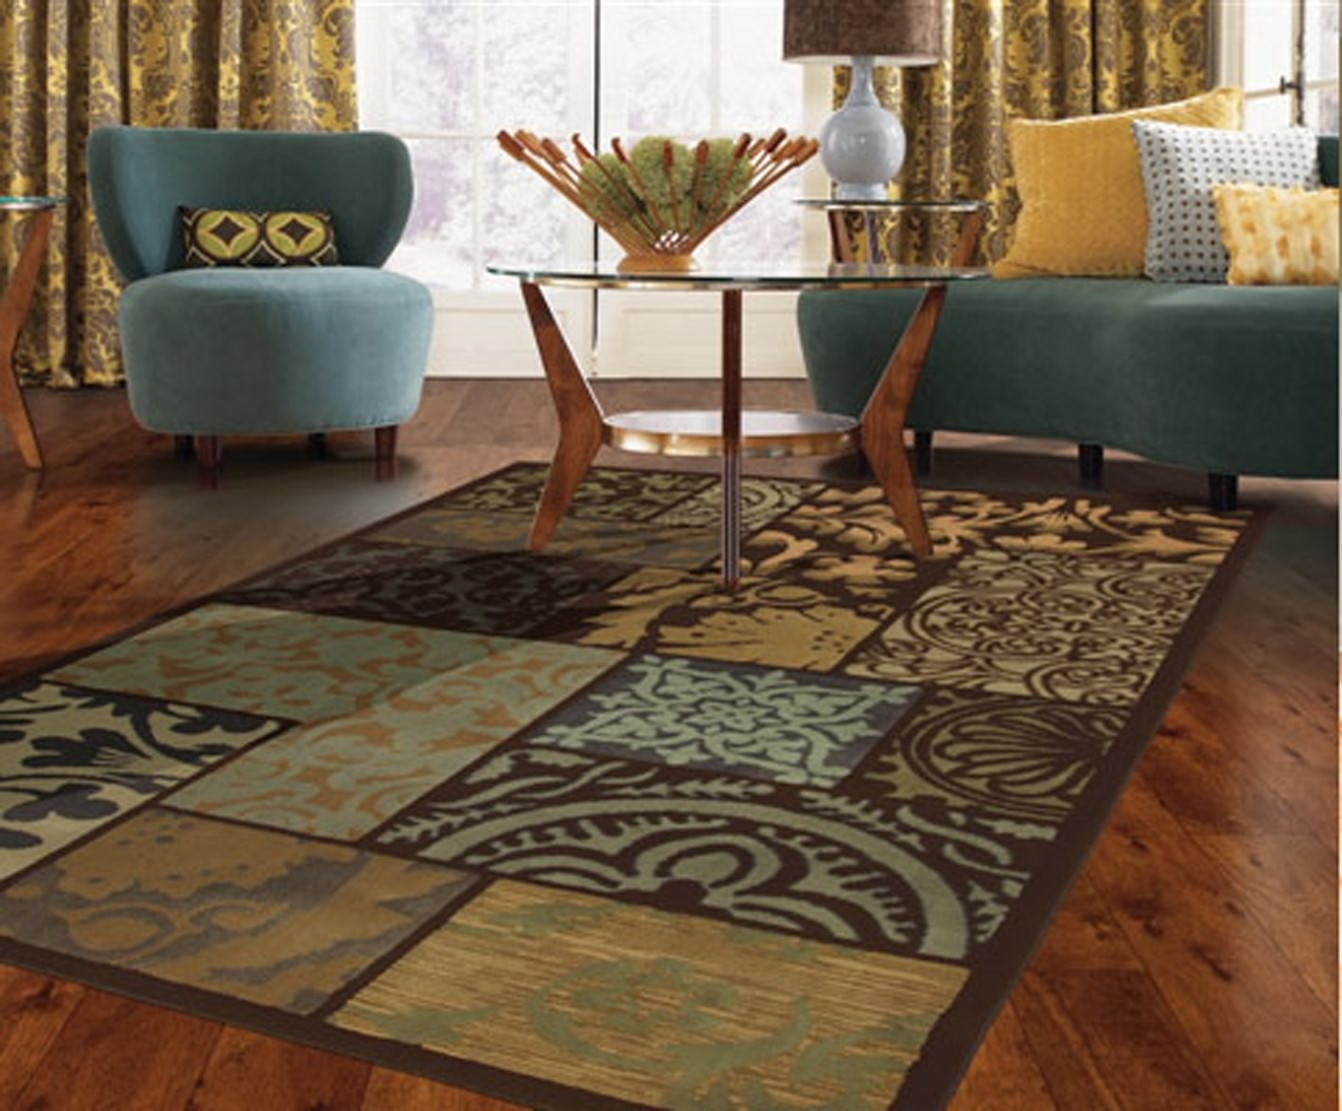 Rug Rugs Under 50 8×10 Area Rug Cheap 8×10 Rugs With Large Floor Rugs (Image 13 of 15)